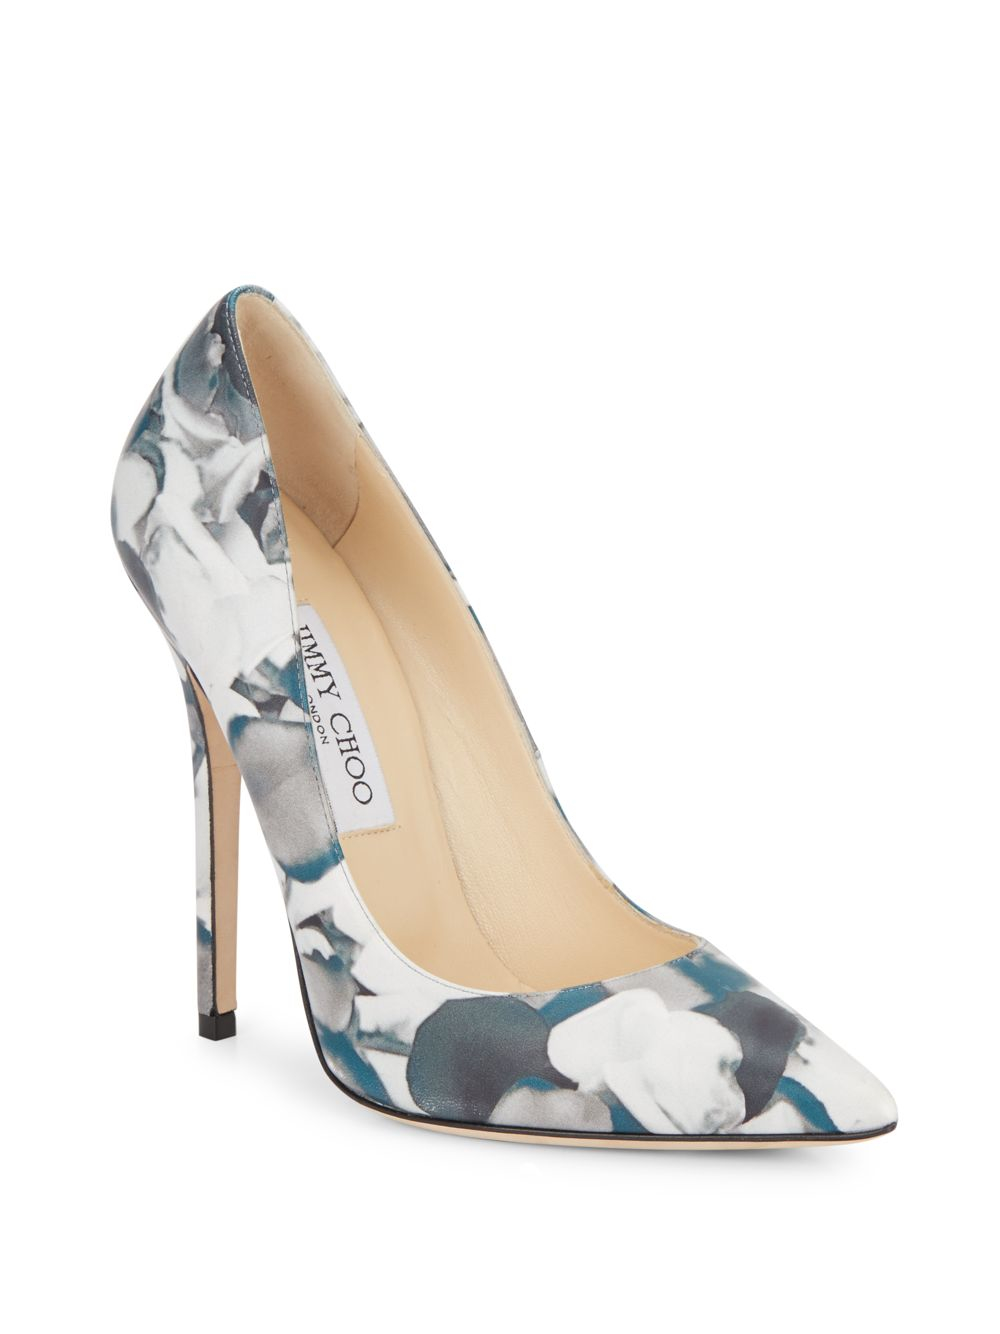 66ca8b85a1e4 Lyst - Jimmy Choo Anouk Floral-print Leather Pumps in Blue